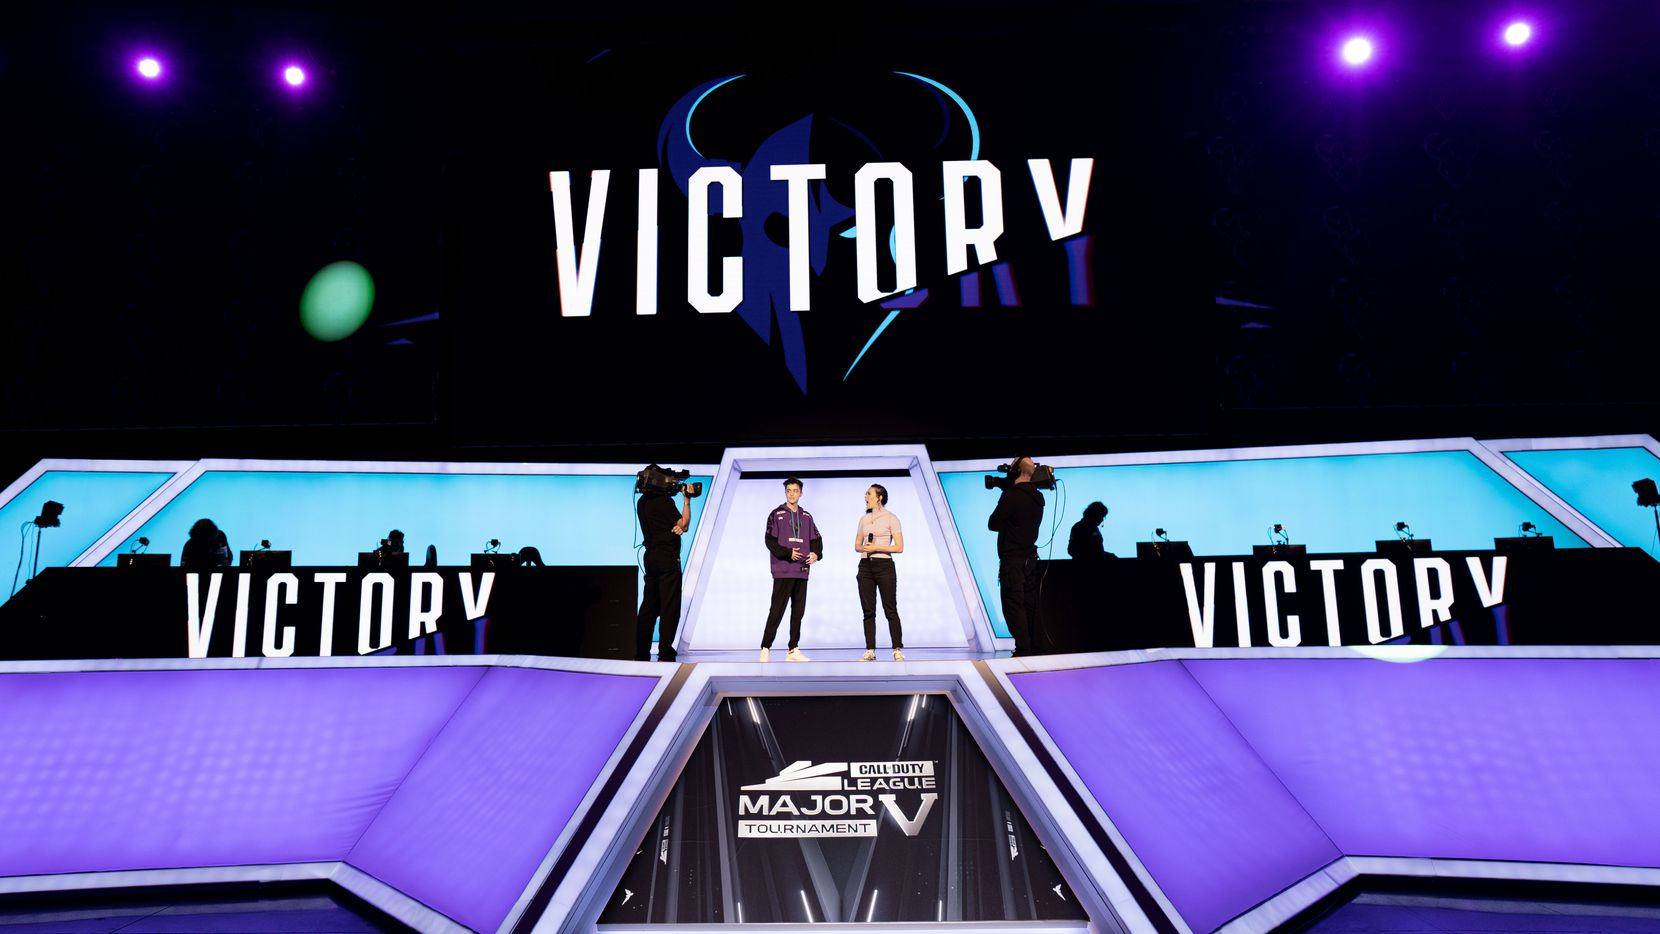 The Minnesota ROKKR completed a best-of-nine comeback to defeat the Toronto Ultra 5-4 at Call of Duty League's Major V at Esports Stadium Arlington Sunday.